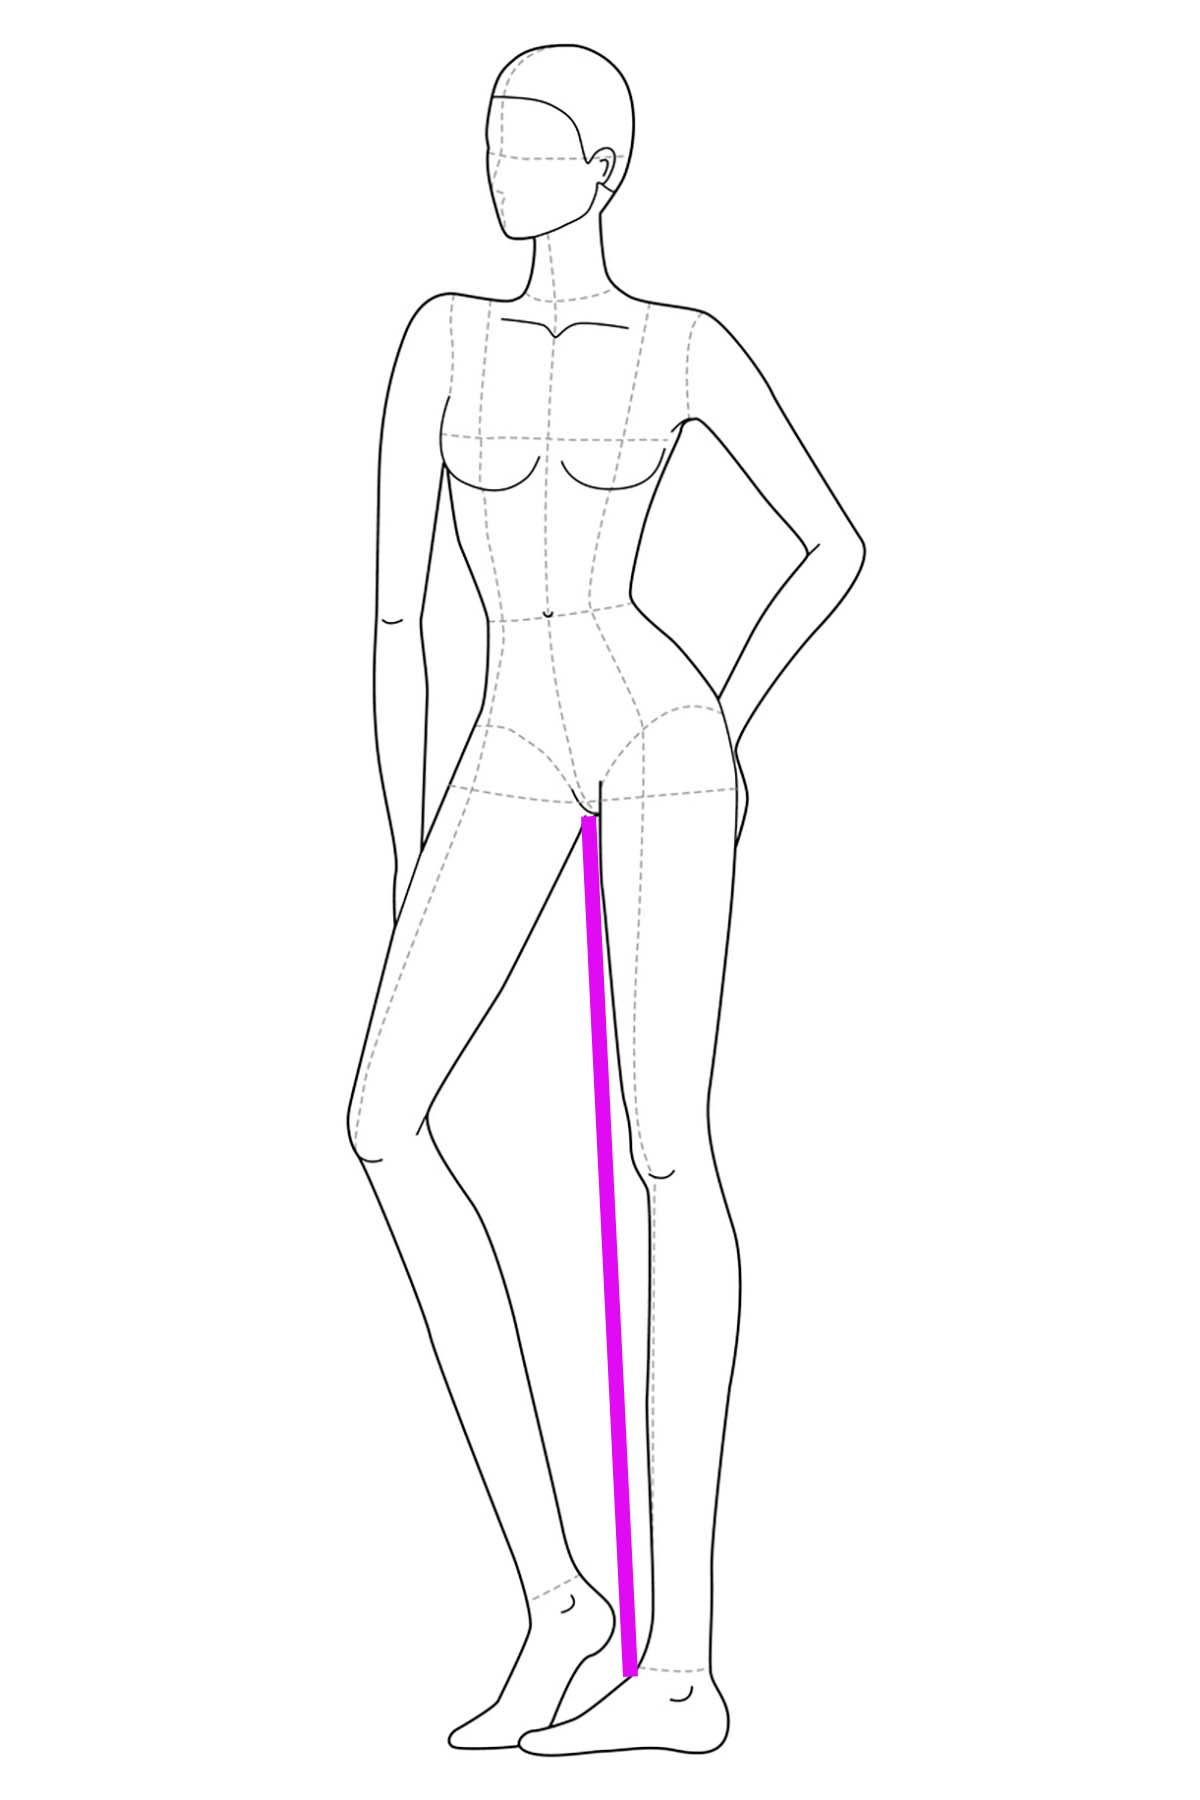 A drawing of a female body, front view. A bright pink line has been drawn on it to indicate inseam measurement.